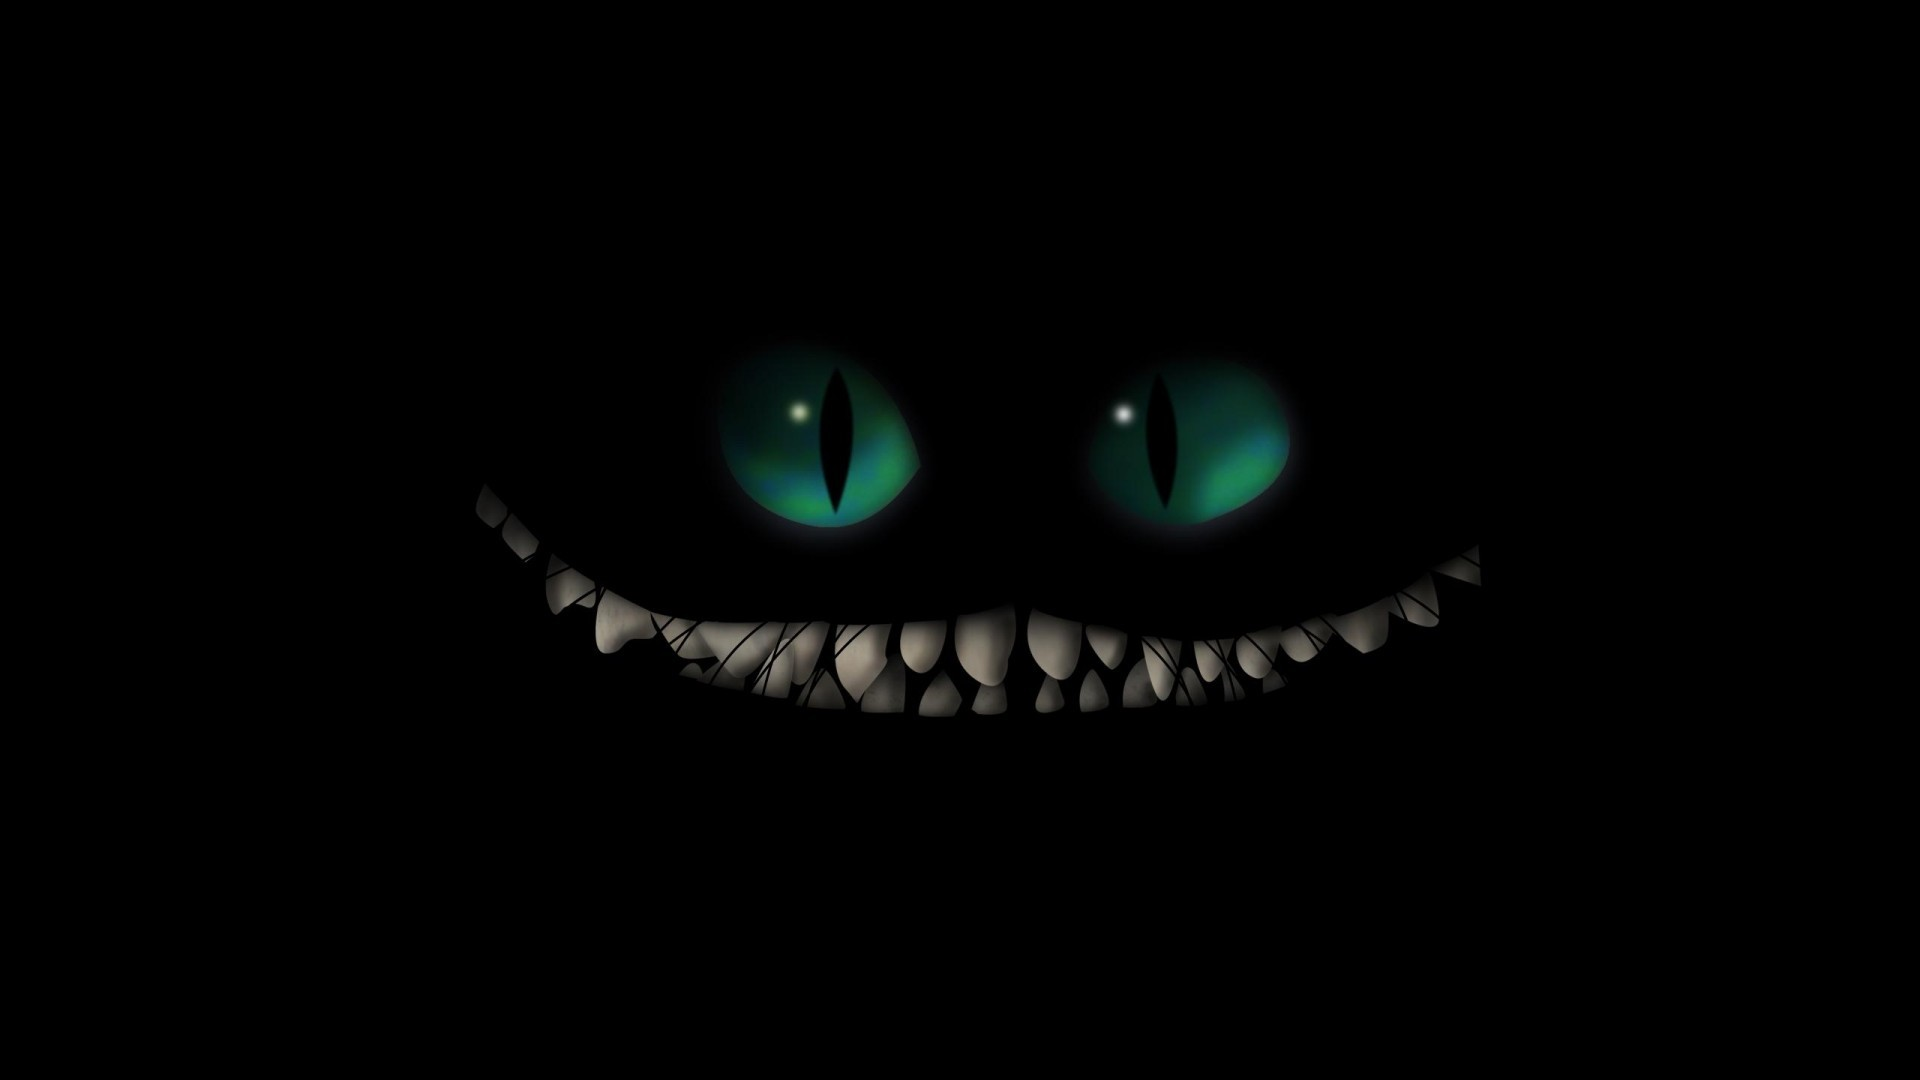 Explore Cheshire Cat Smile, Cute Monsters, and more!